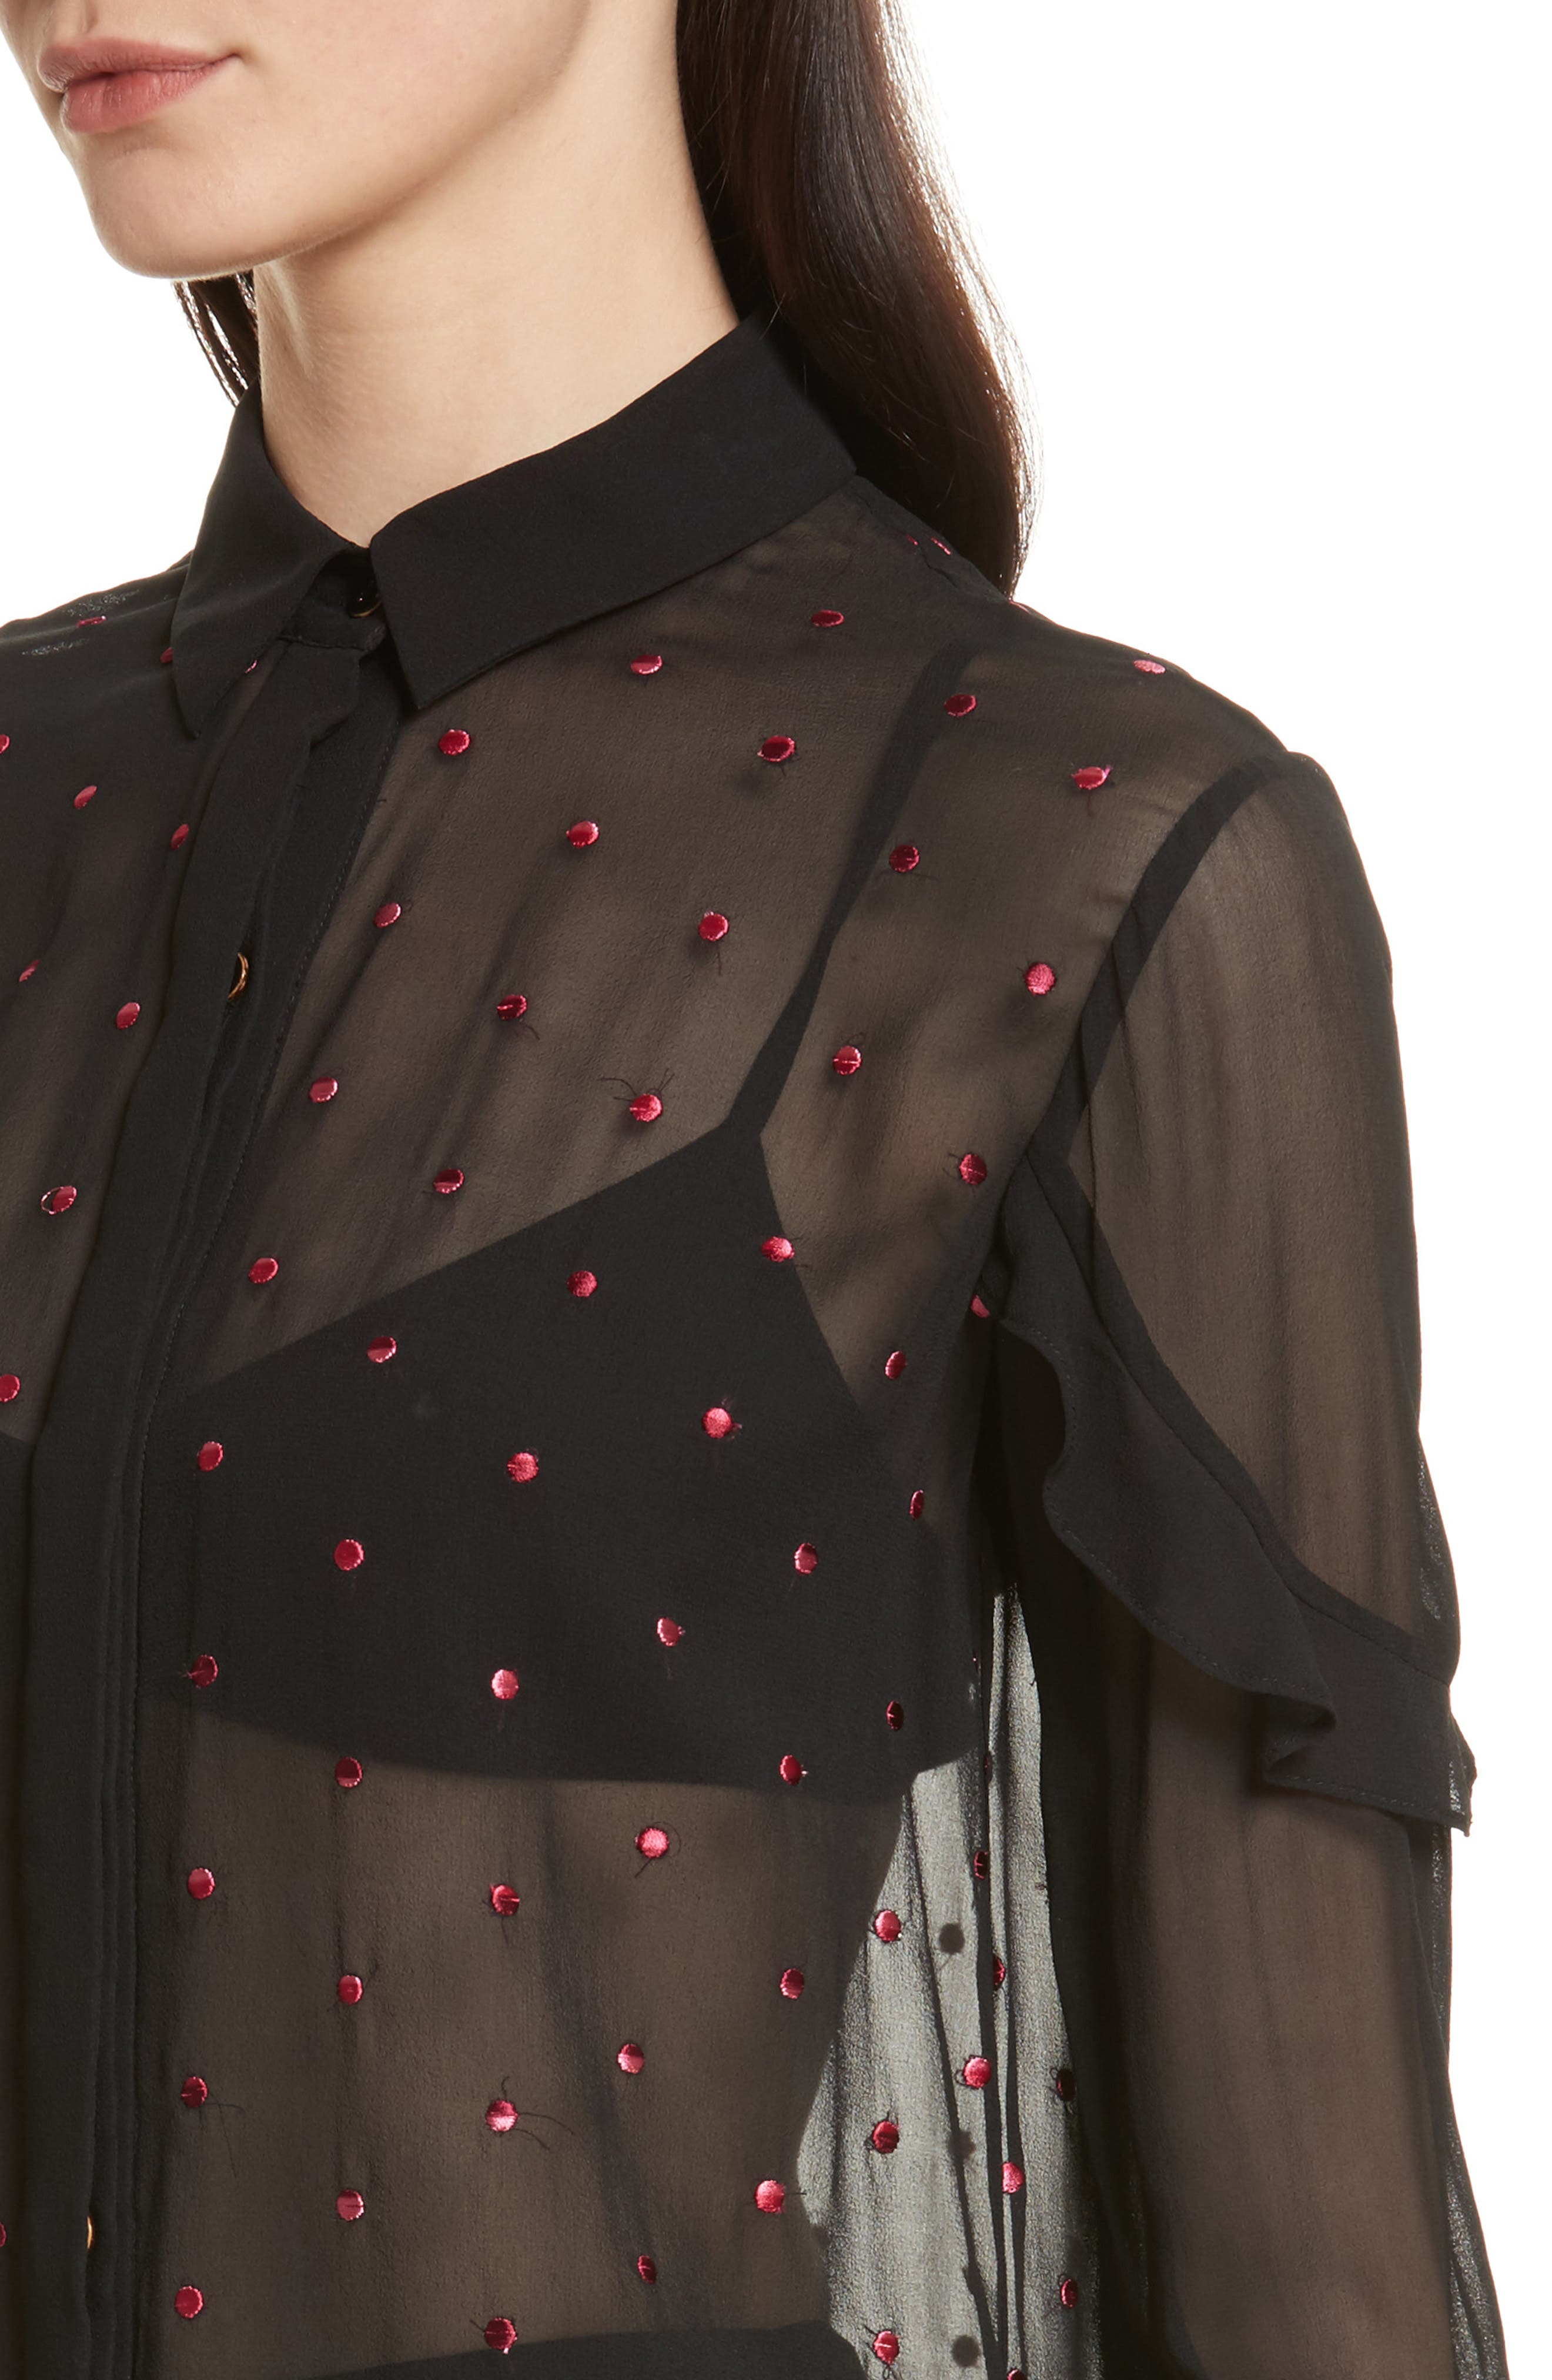 Myra Embroidered Silk Shirt,                             Alternate thumbnail 4, color,                             Black Rose Ombre Dots